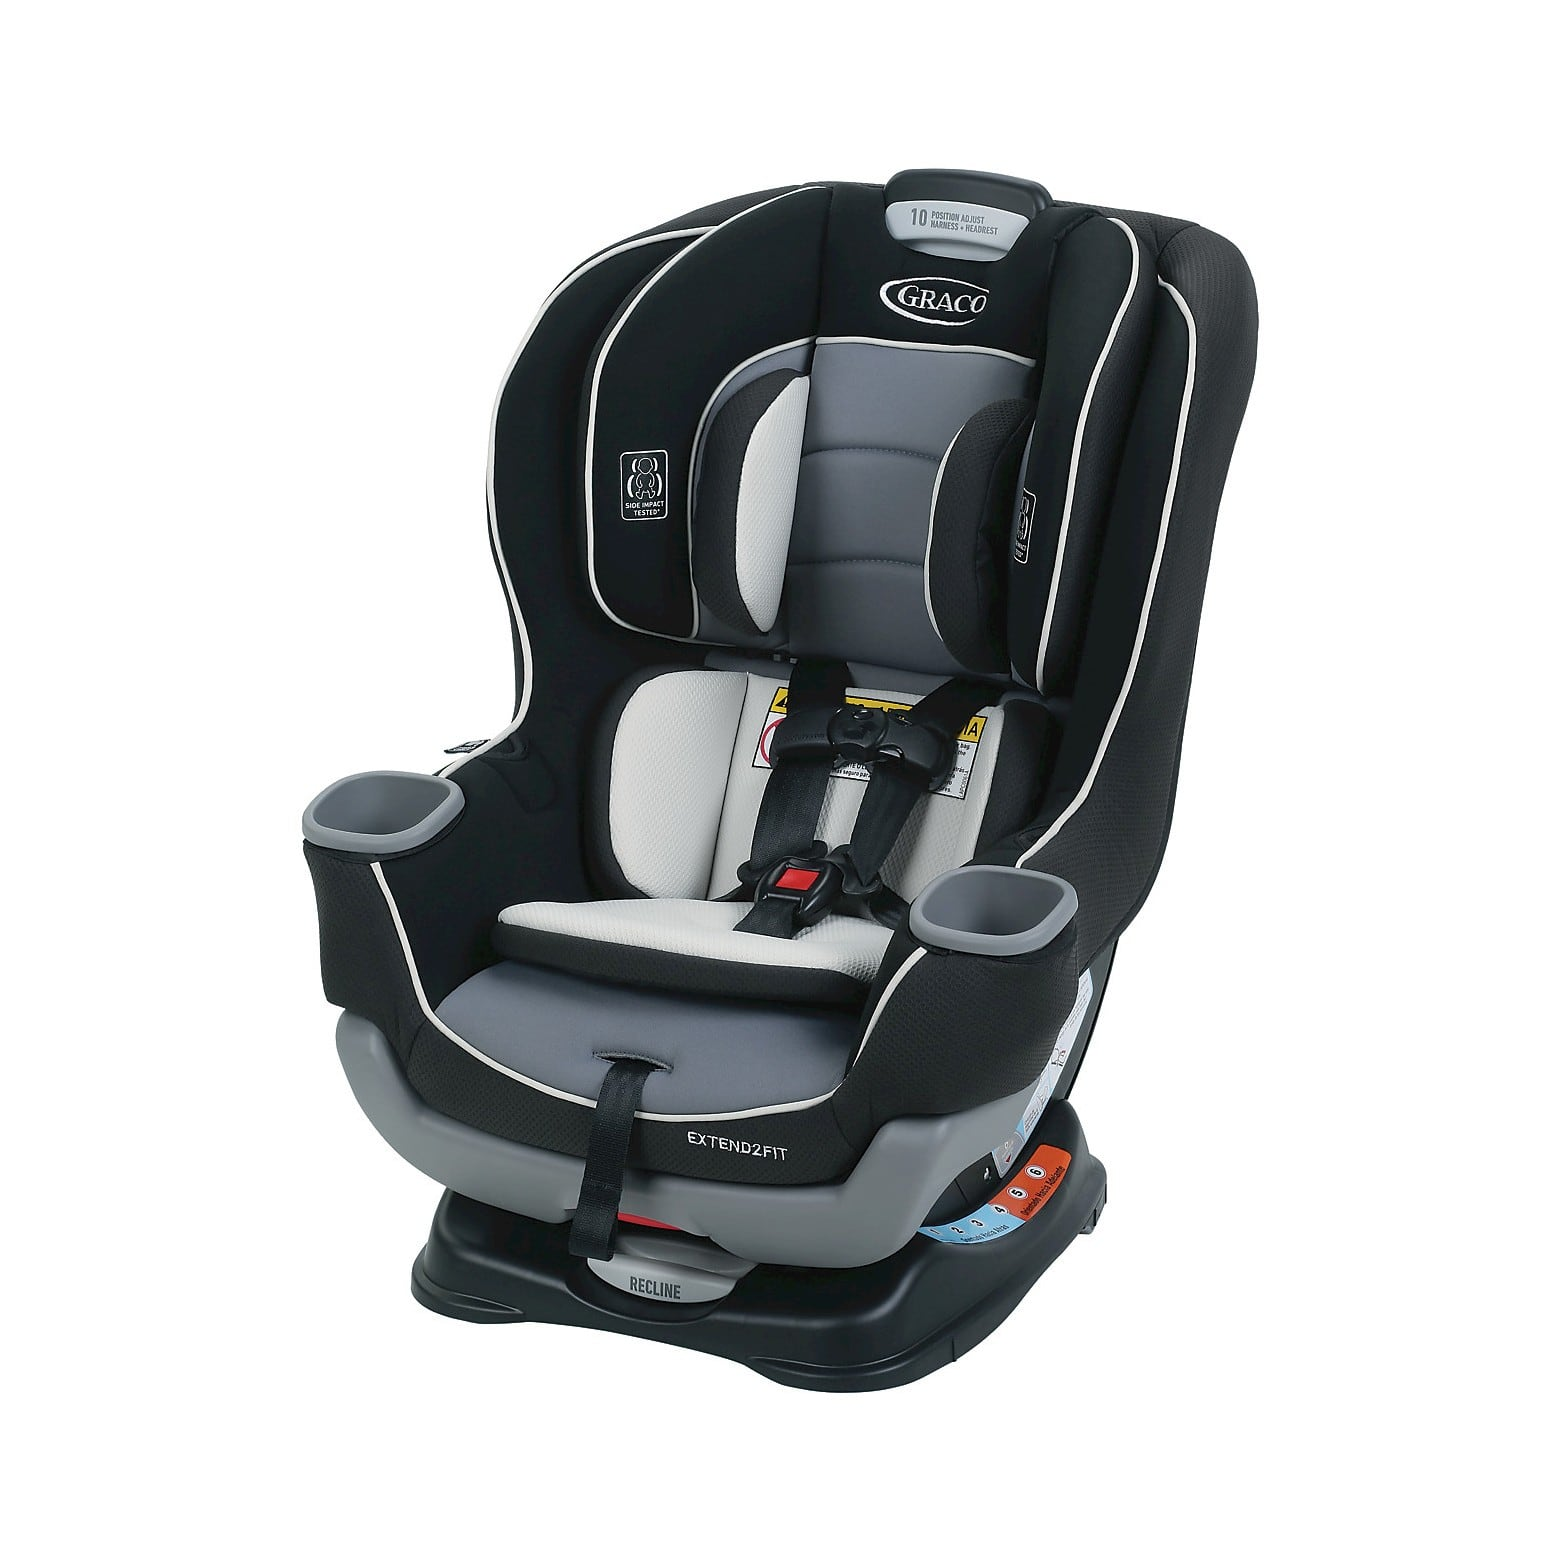 Graco Baby Extend2Fit Convertible Car Seat in Gotham $119.19